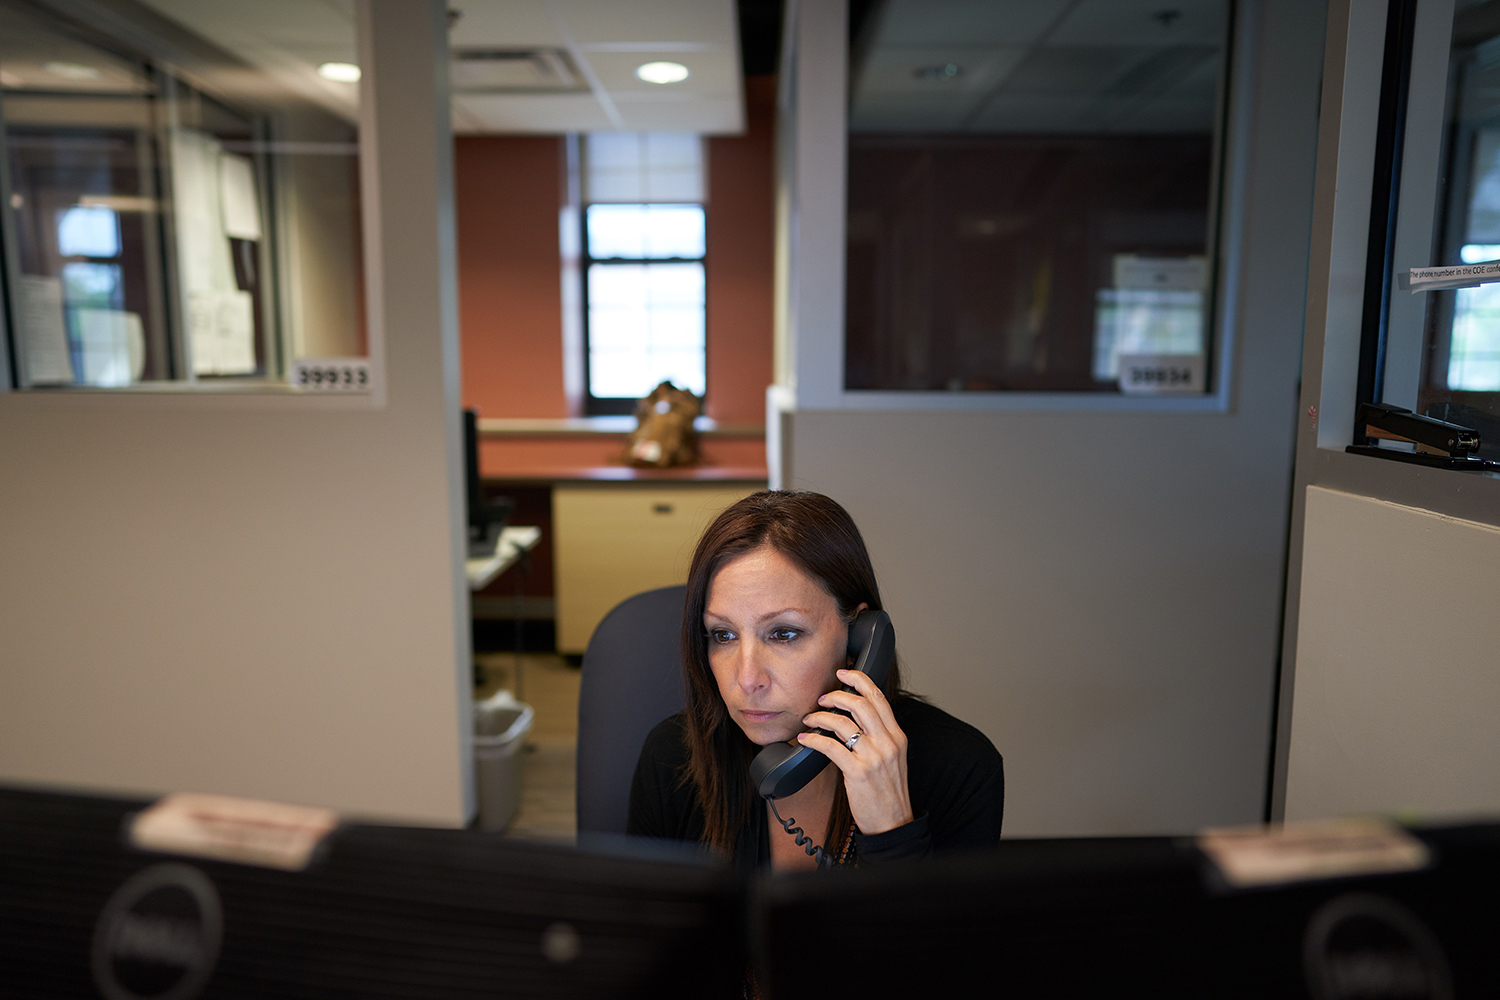 A worker at the Veterans Crisis Line call centre in Canandaigua, N.Y., listens to a call from a veteran on June 4, 2019. (Geoff Robins/AFP via Getty Images)